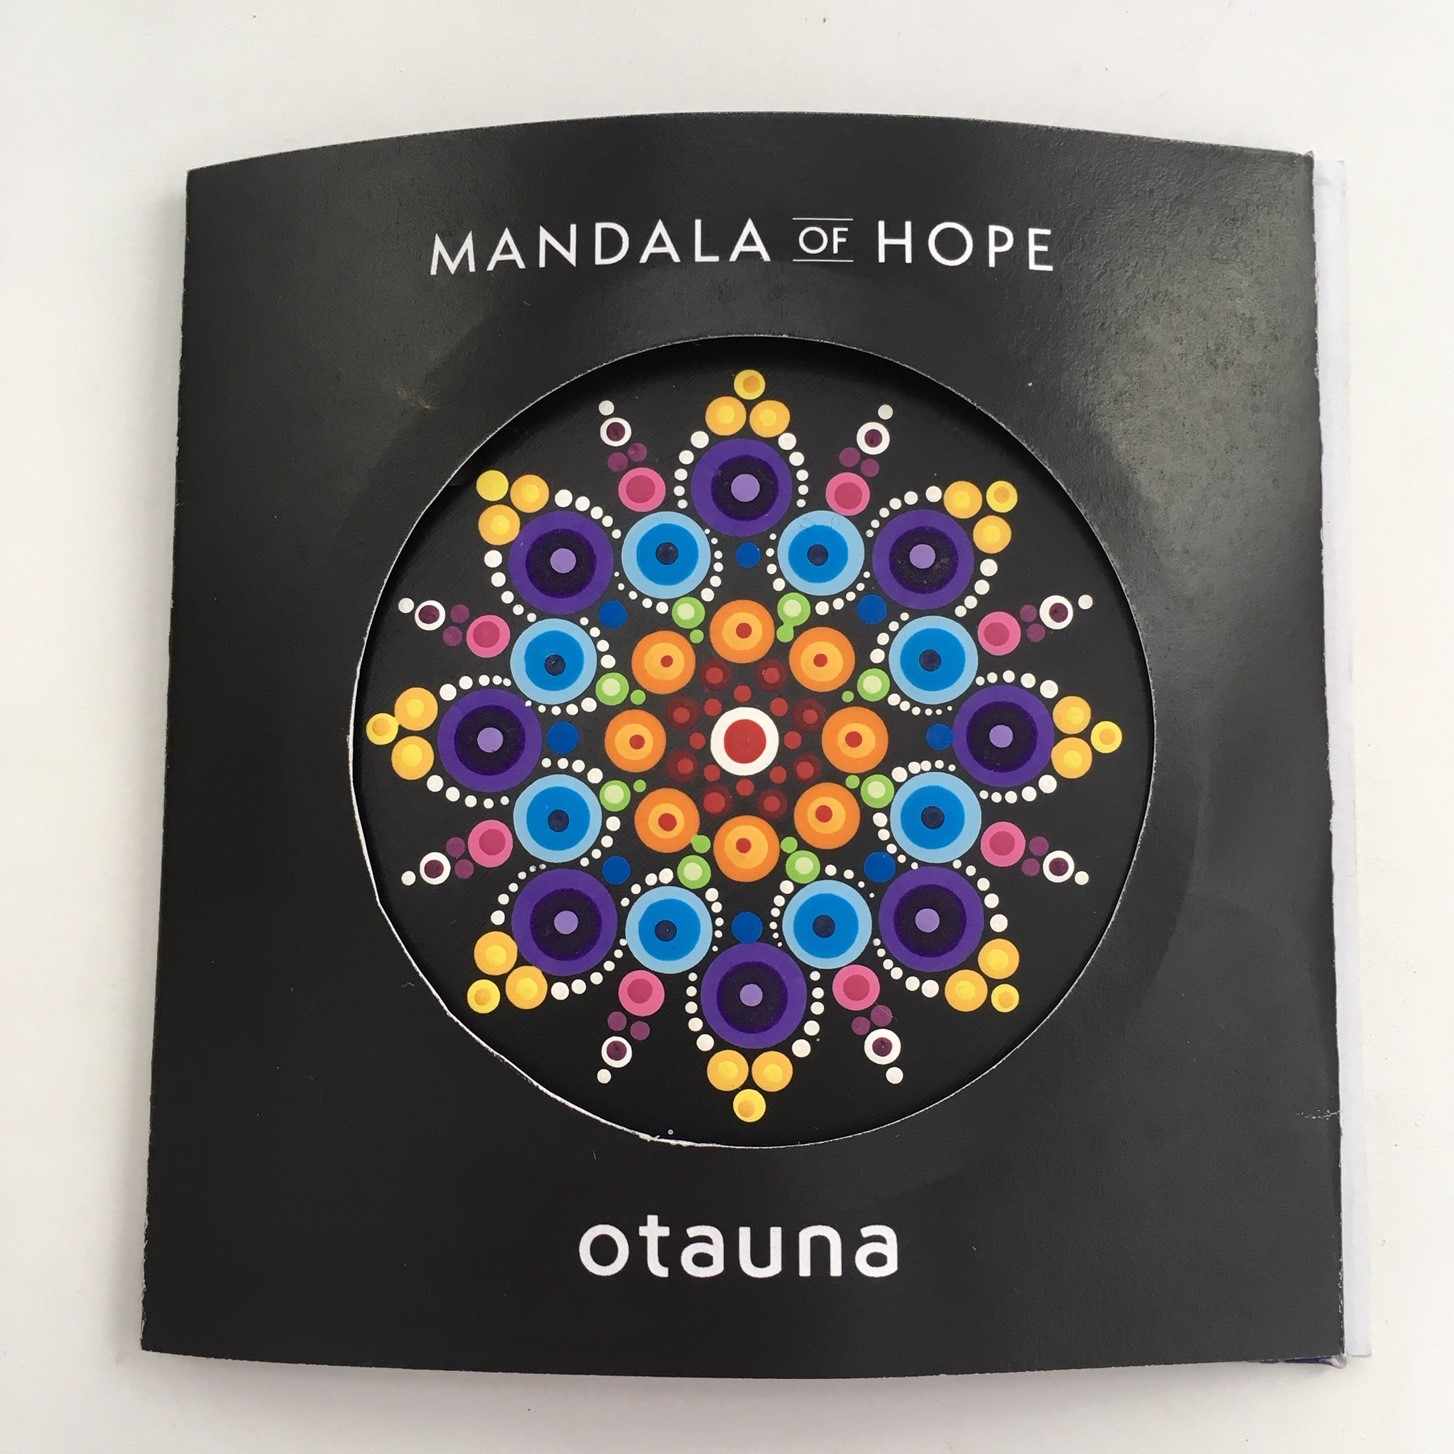 The  DIVERSITY  mandala bursts with an abundance of colours representing our human family uniting harmoniously. May the pattern parallel communities of all sizes in our world.